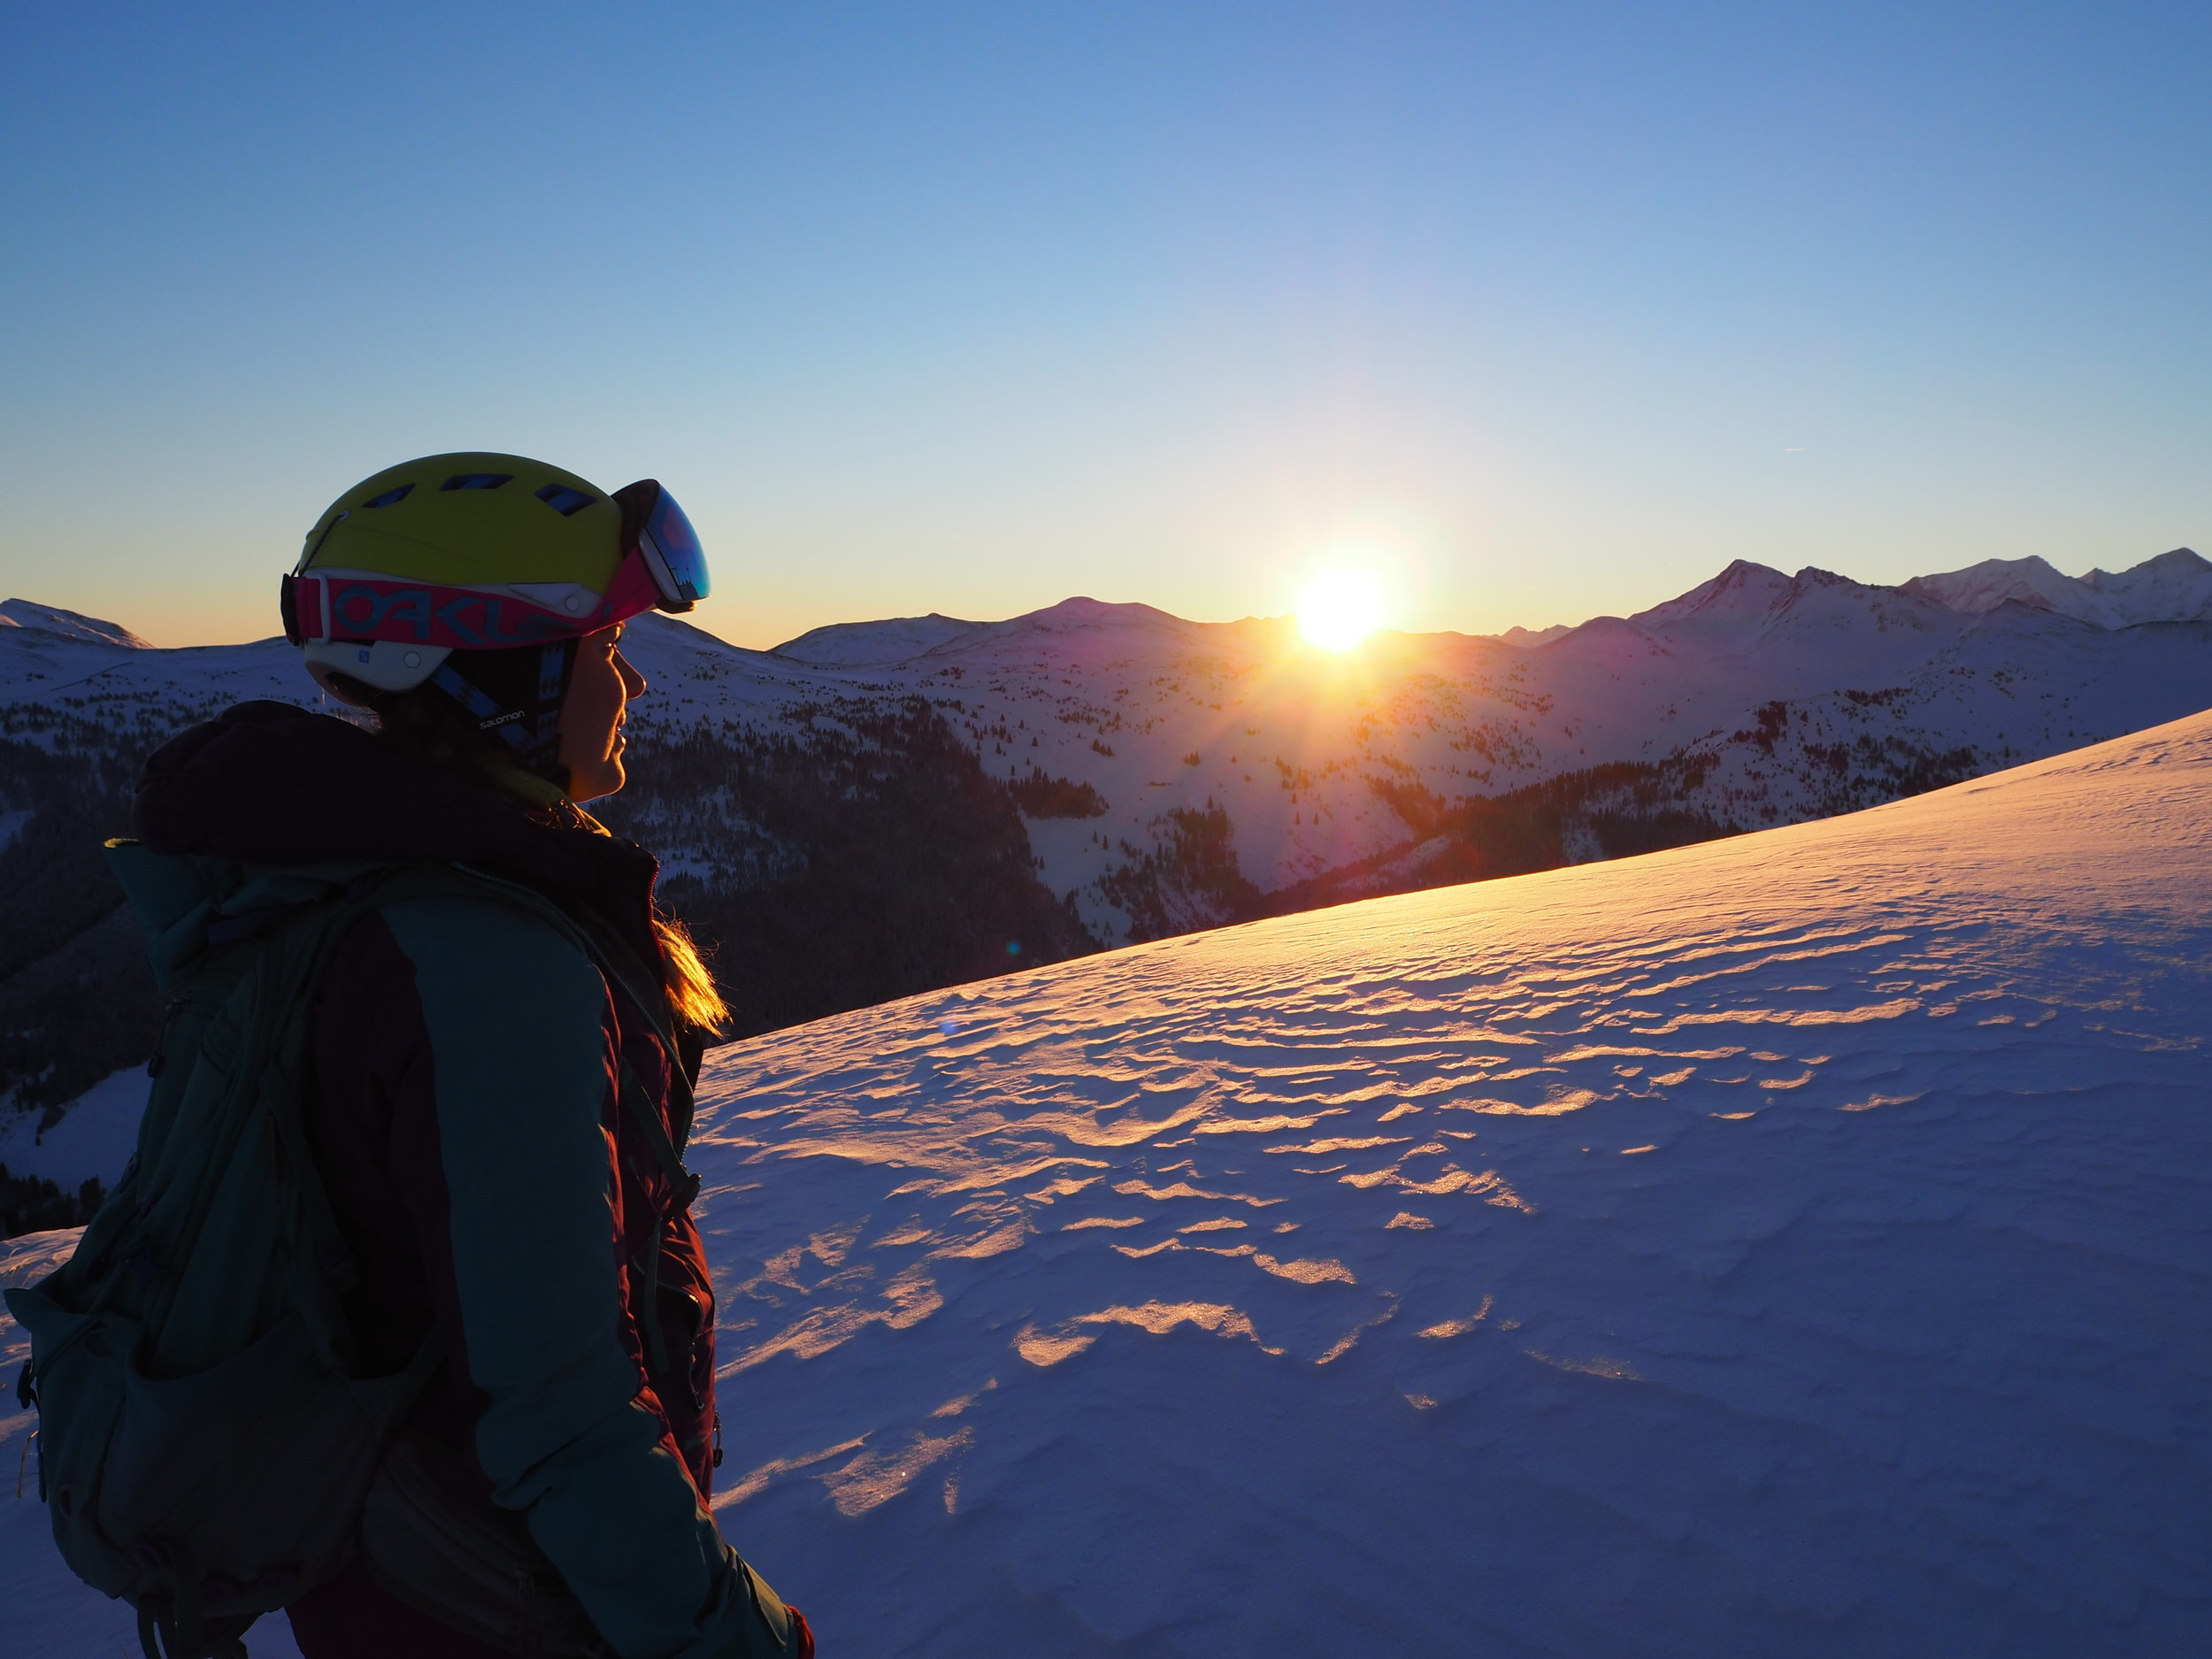 Saalbach, Austria winter sports weekend skiing and adventure trip